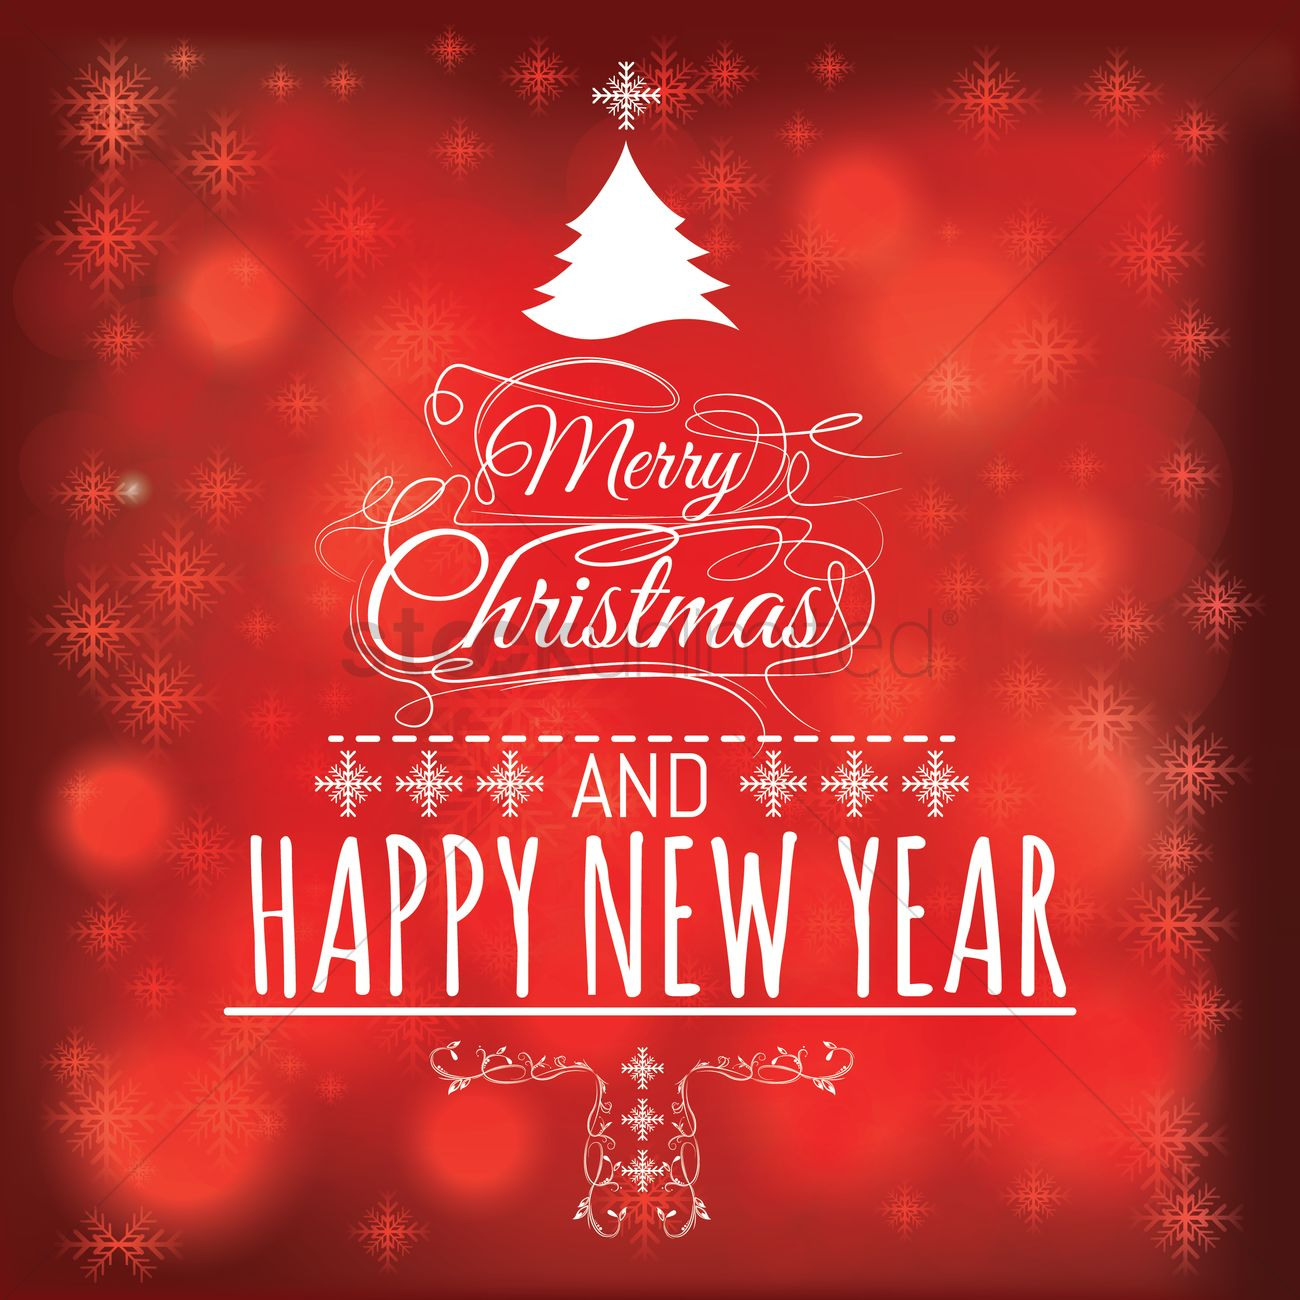 Free Merry Chirstmas And New Year Greetings Vector Image 1603995